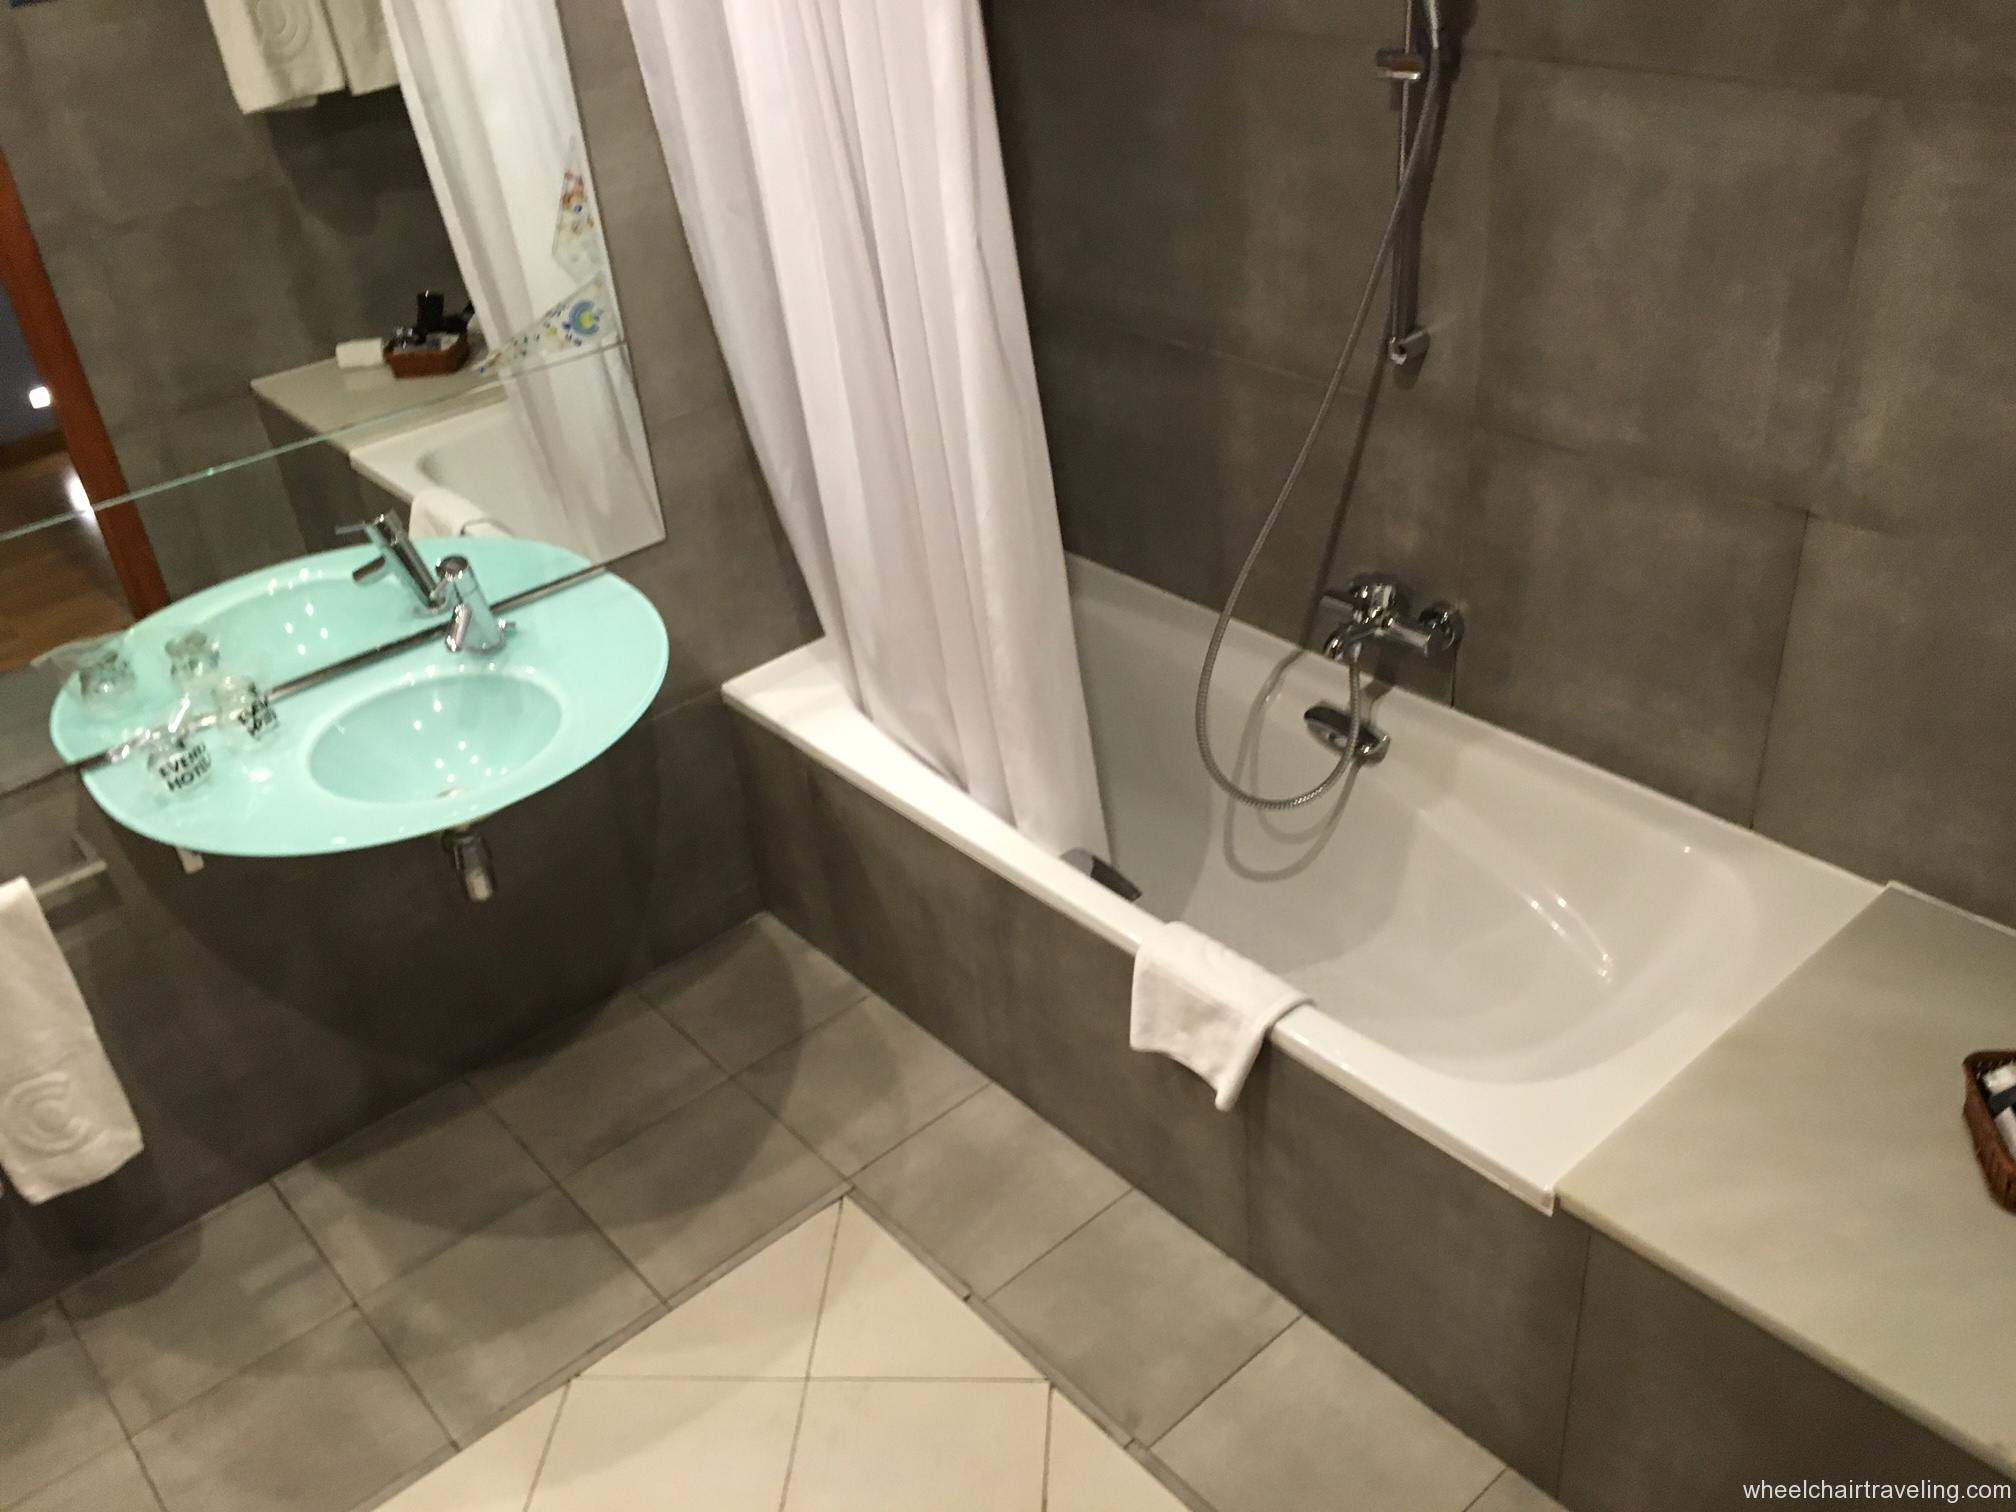 Barcelona hotel bathroom sink